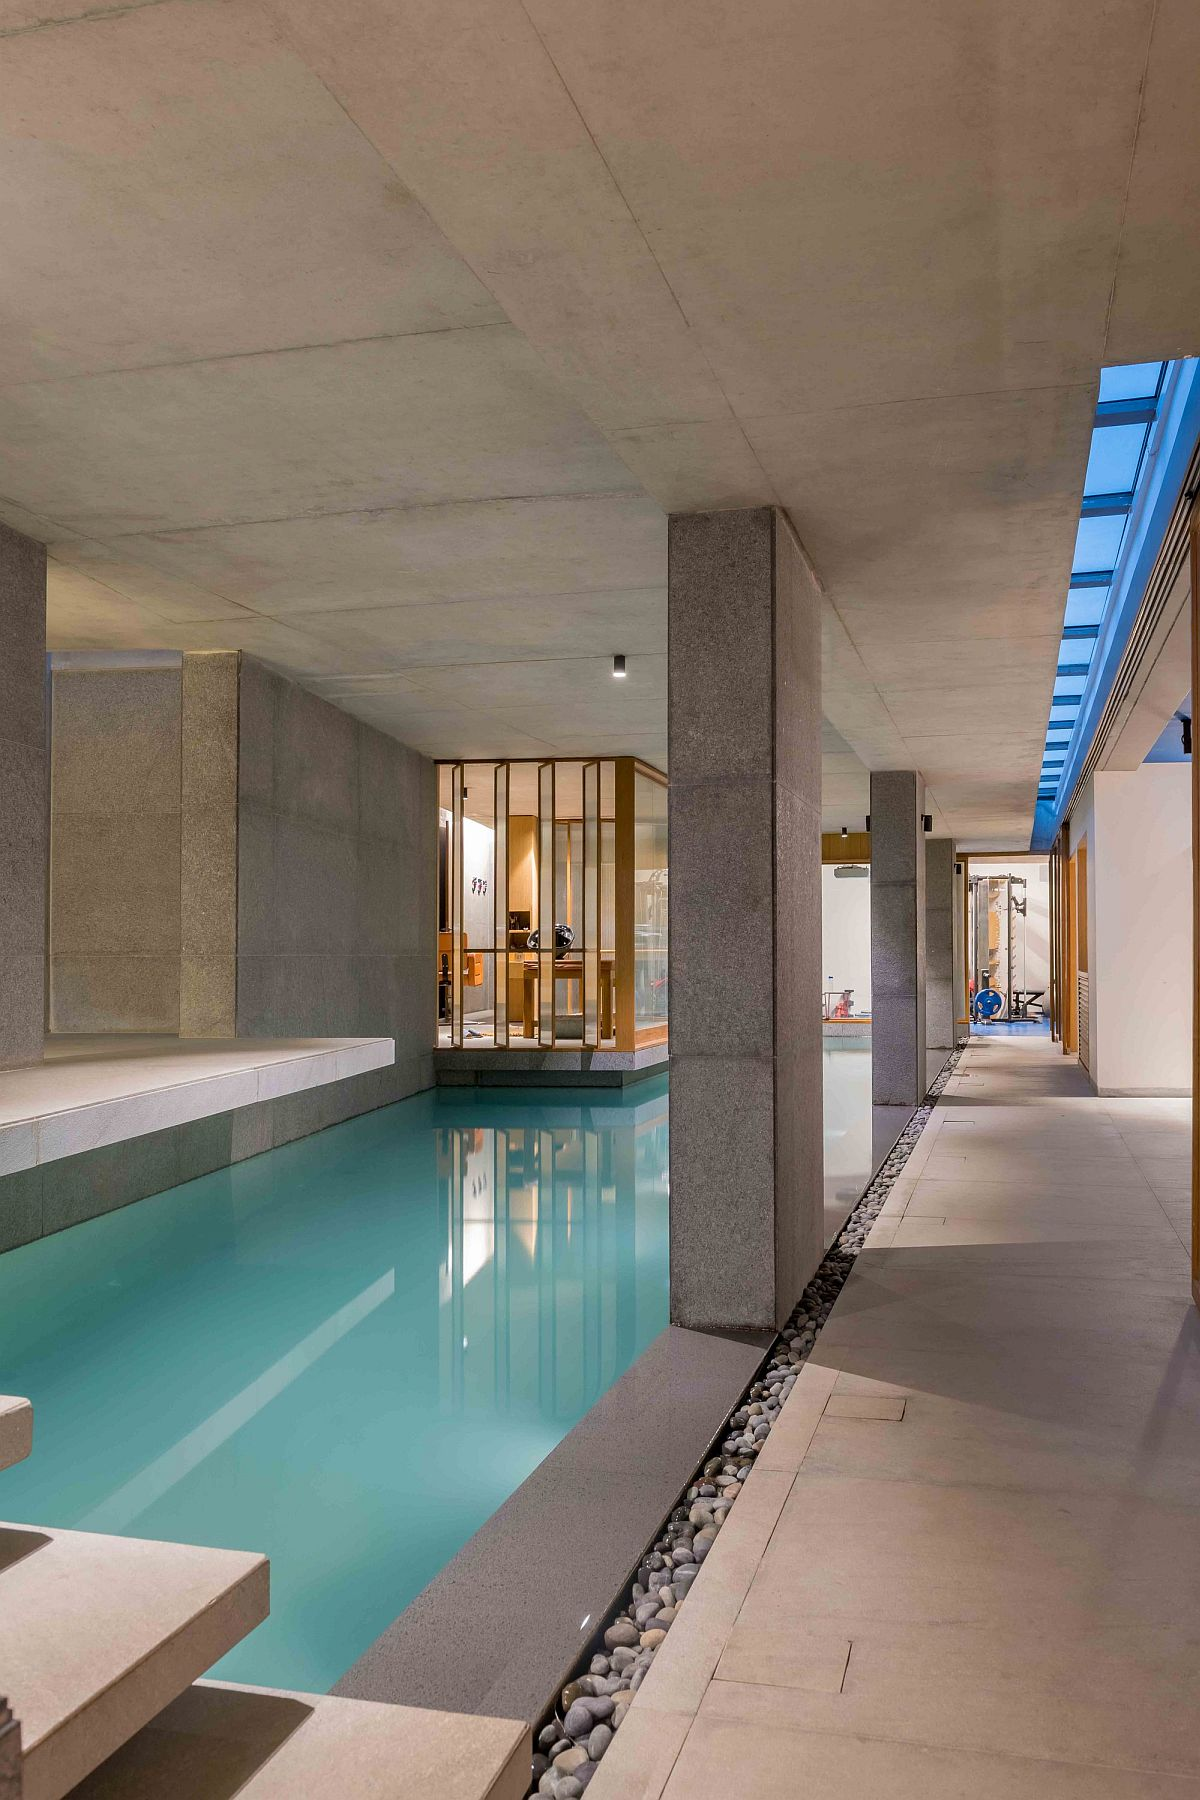 Spa area in the middle of the pool offers a comforting and serene escape